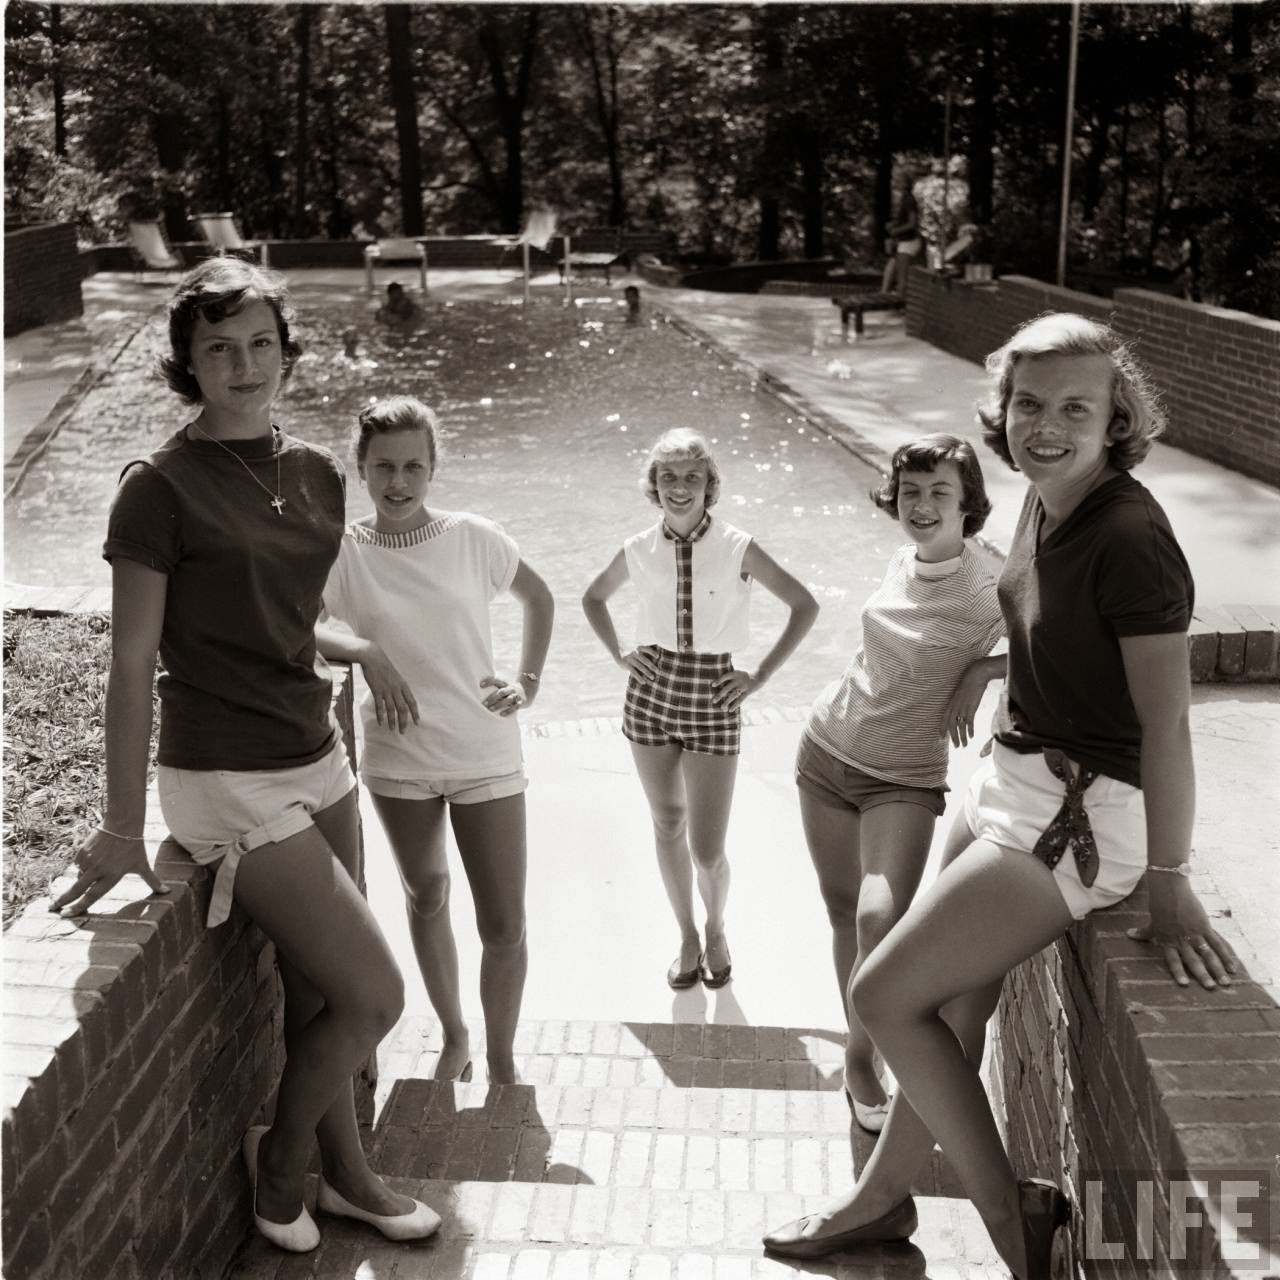 Short Shorts in the 1950's (24)